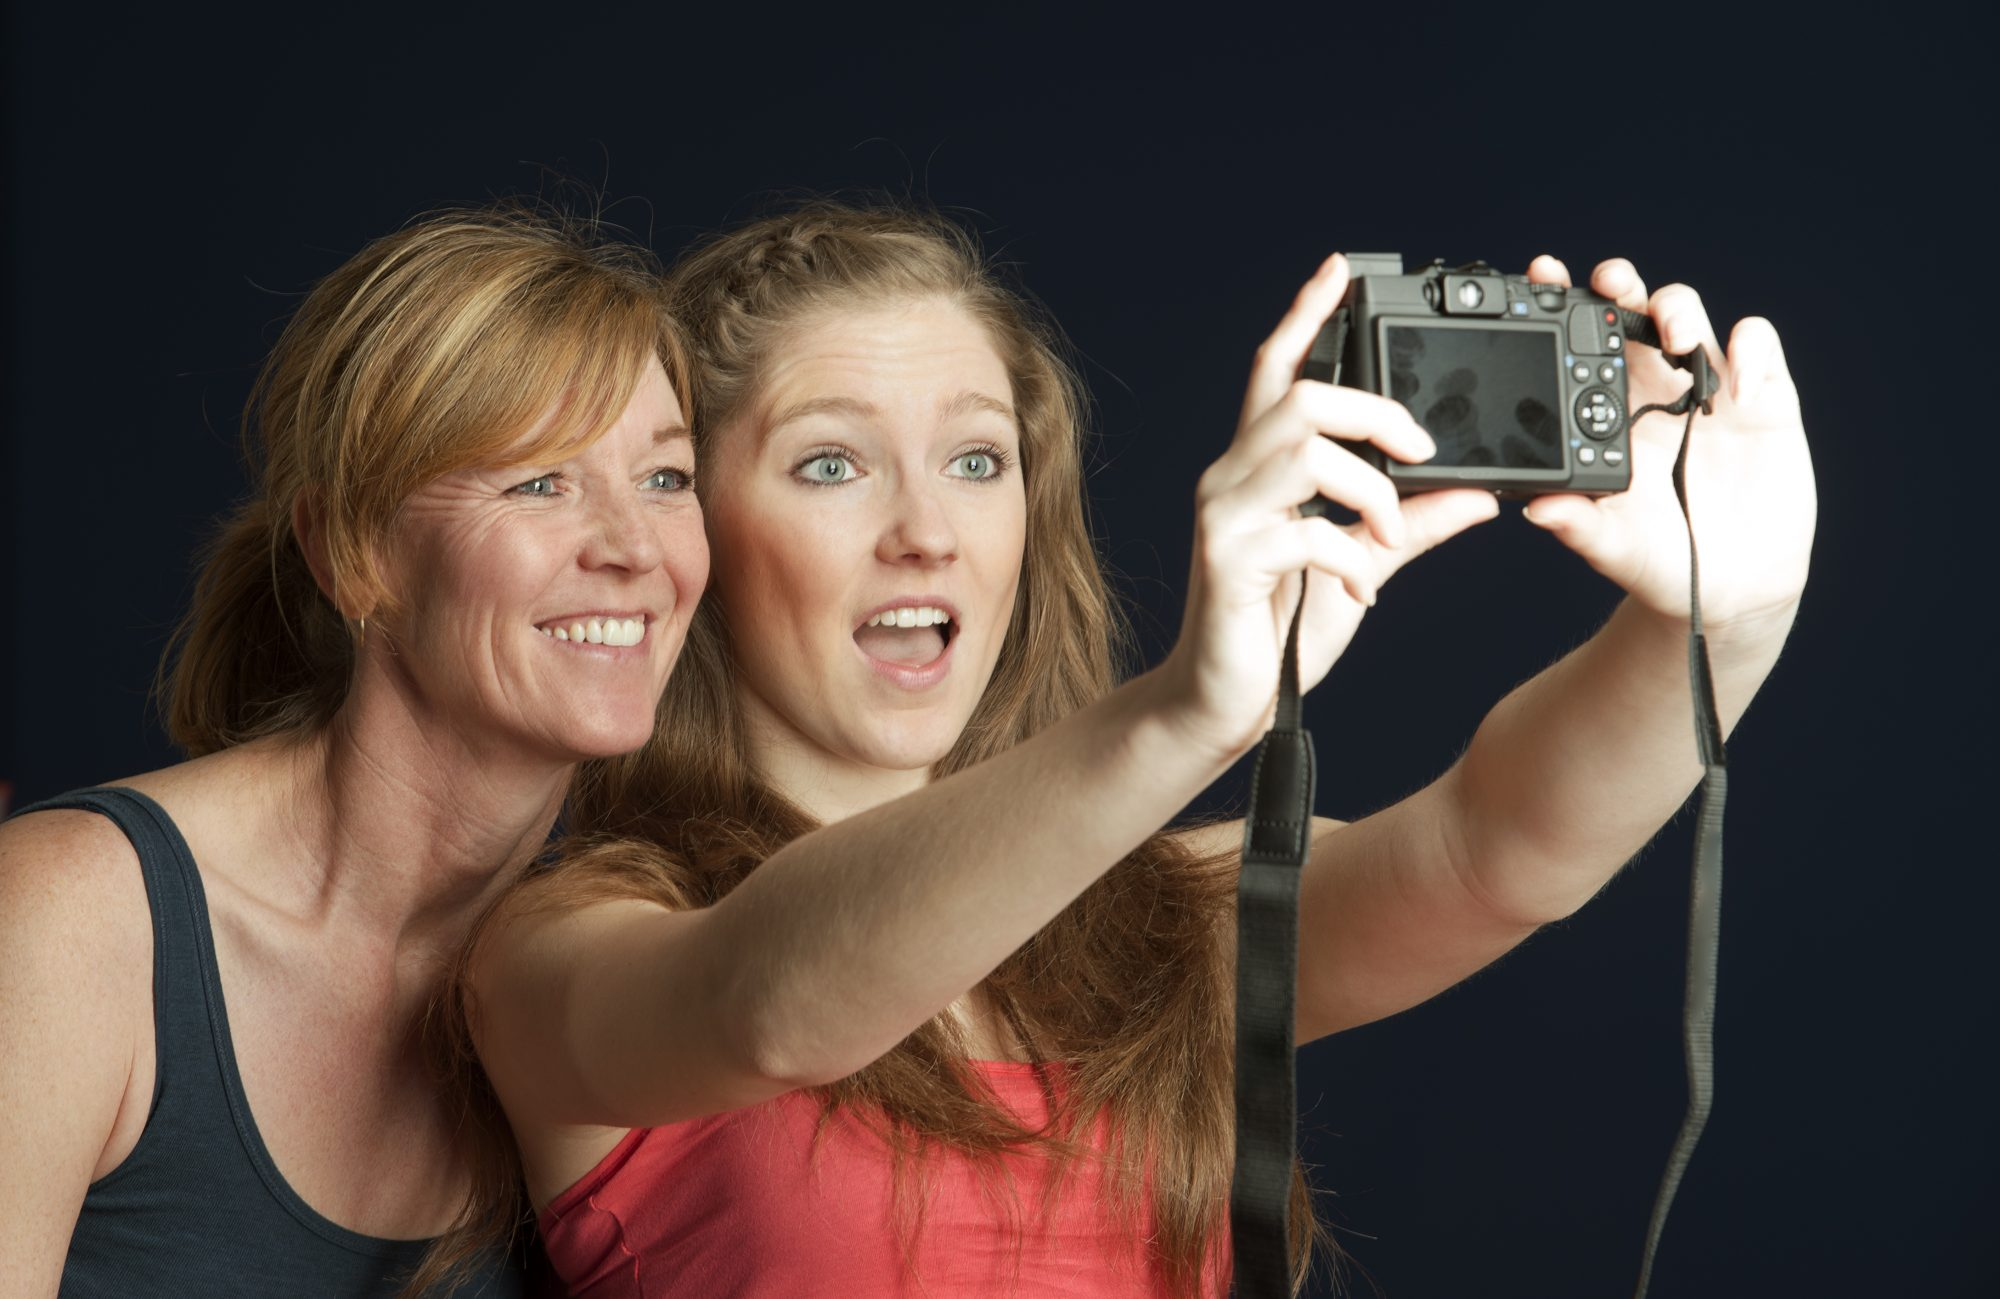 mother daughter selfie